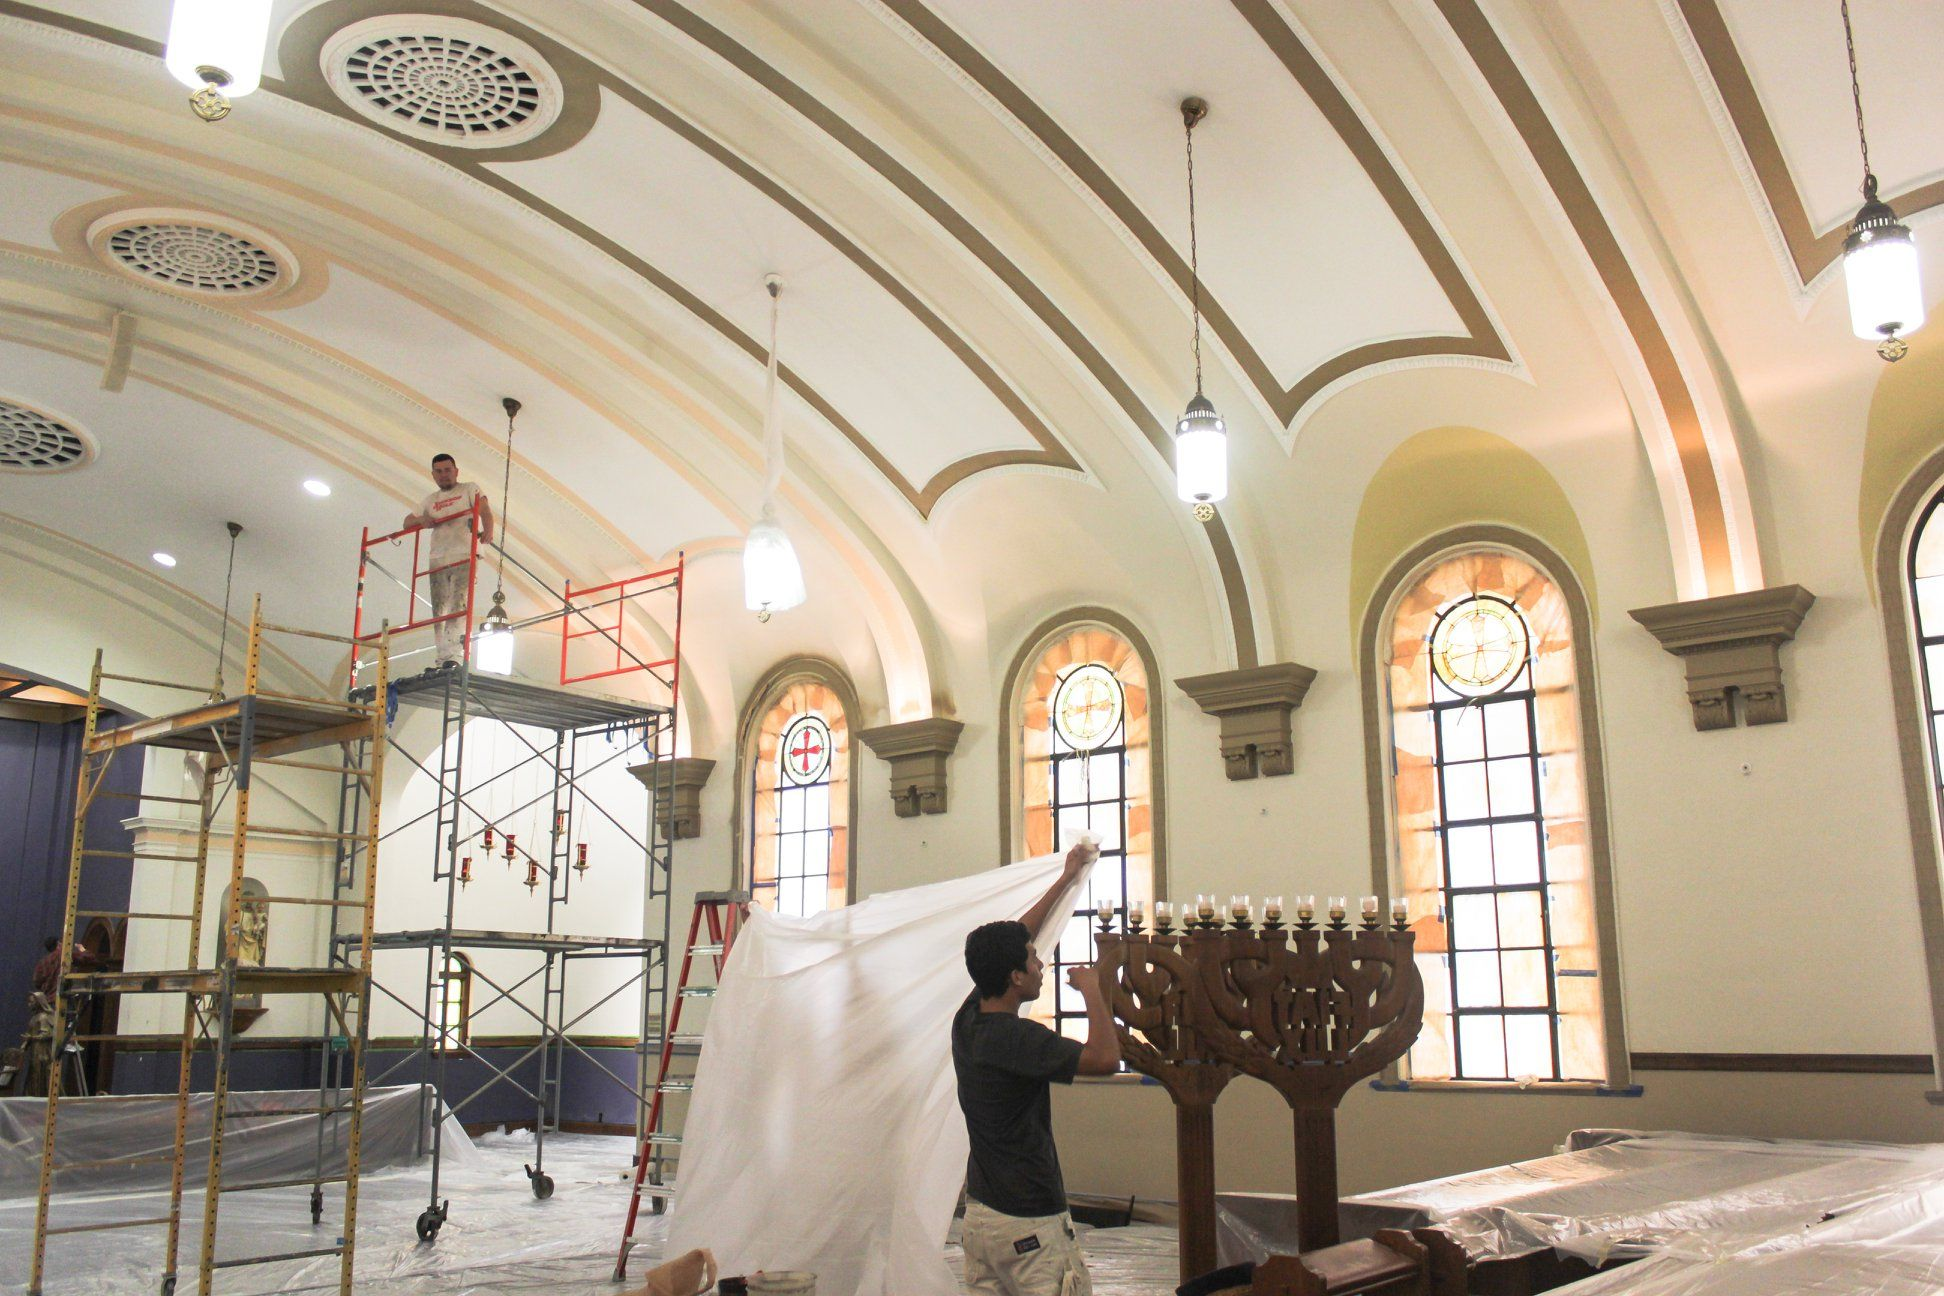 Renovations begin in St. John's Chapel